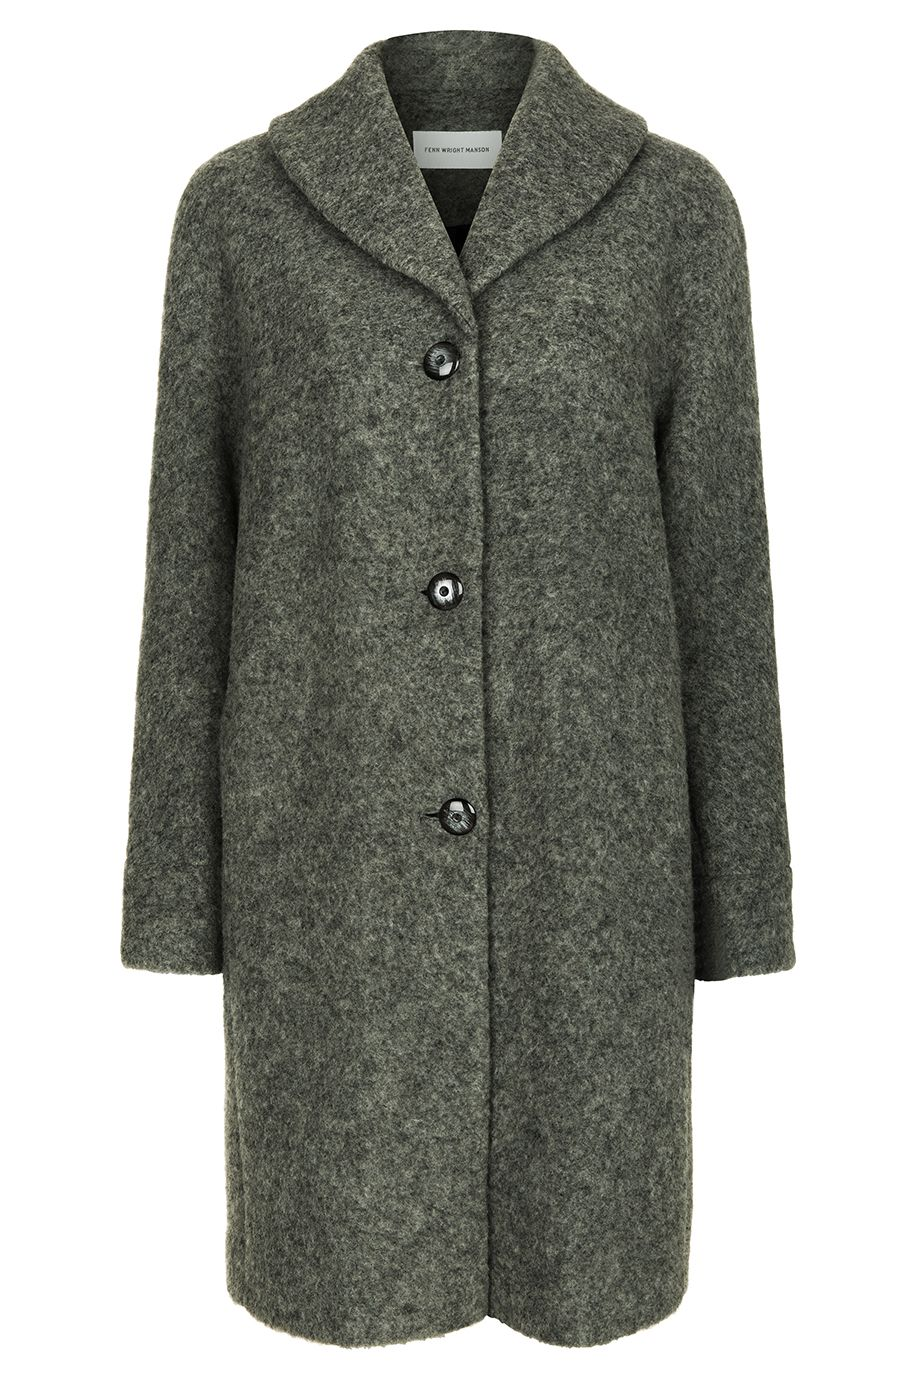 Fenn Wright Manson Rose Coat, Charcoal